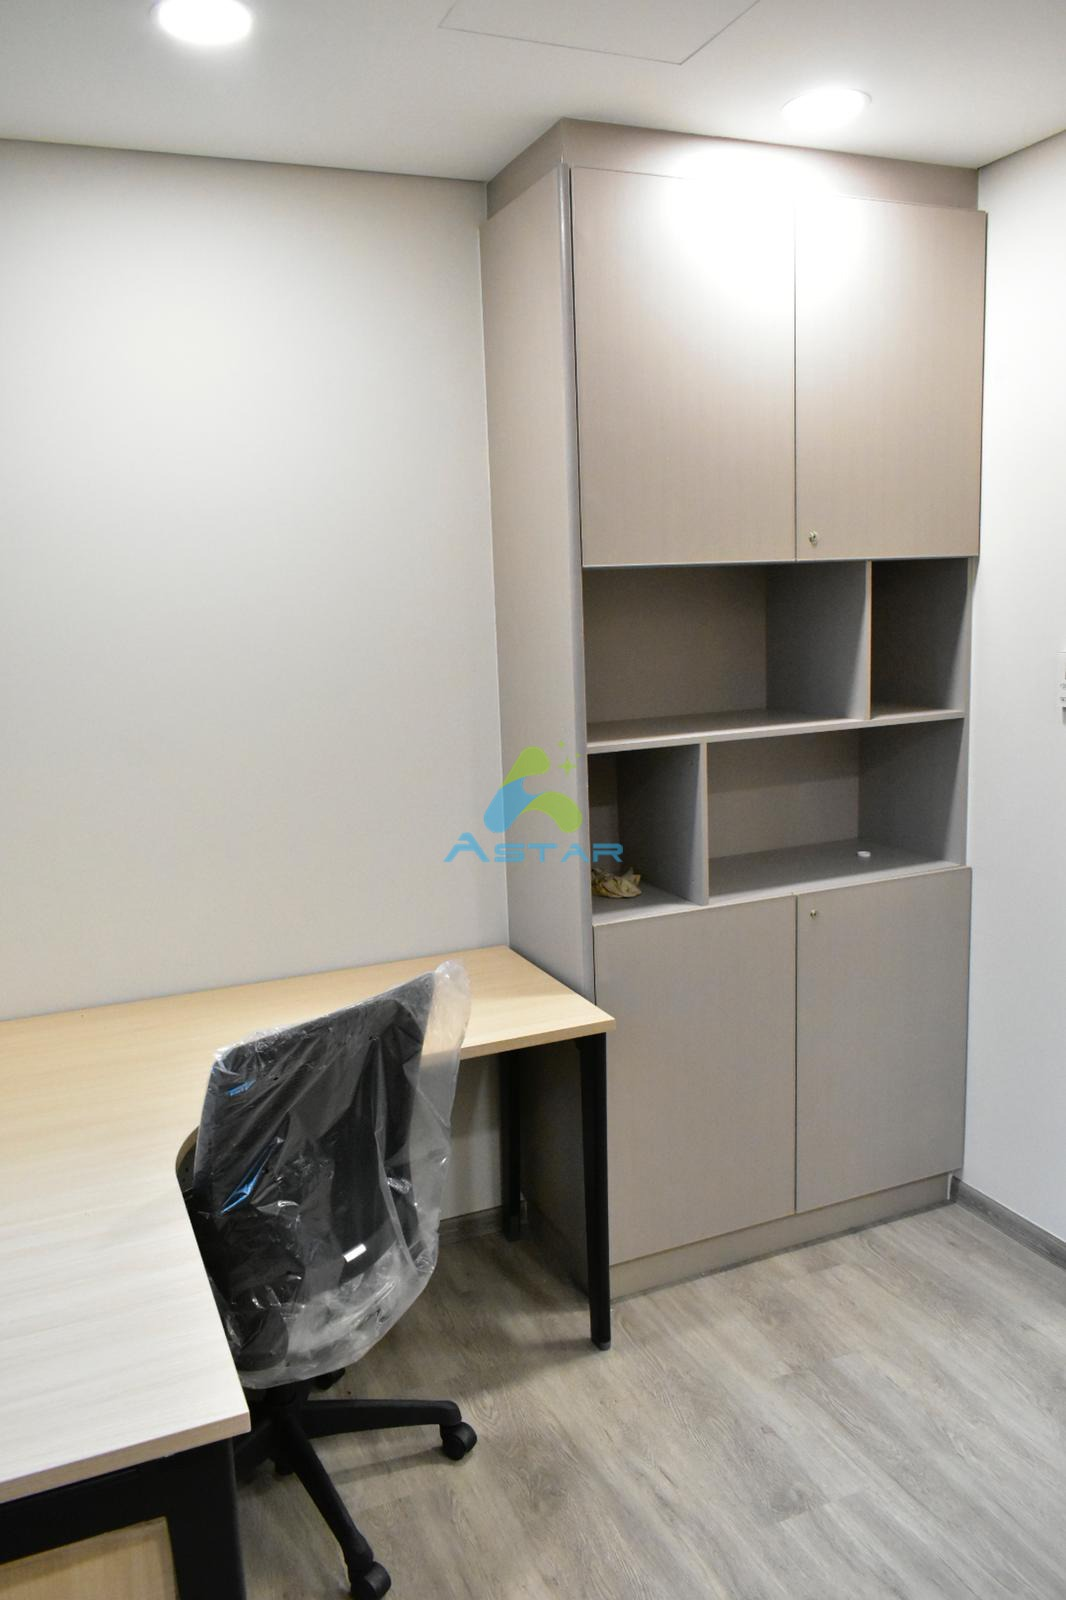 astar furnishing aluminum projects Office at All Saints Church Counselling Center 600 UPPER CHANGI ROAD 29